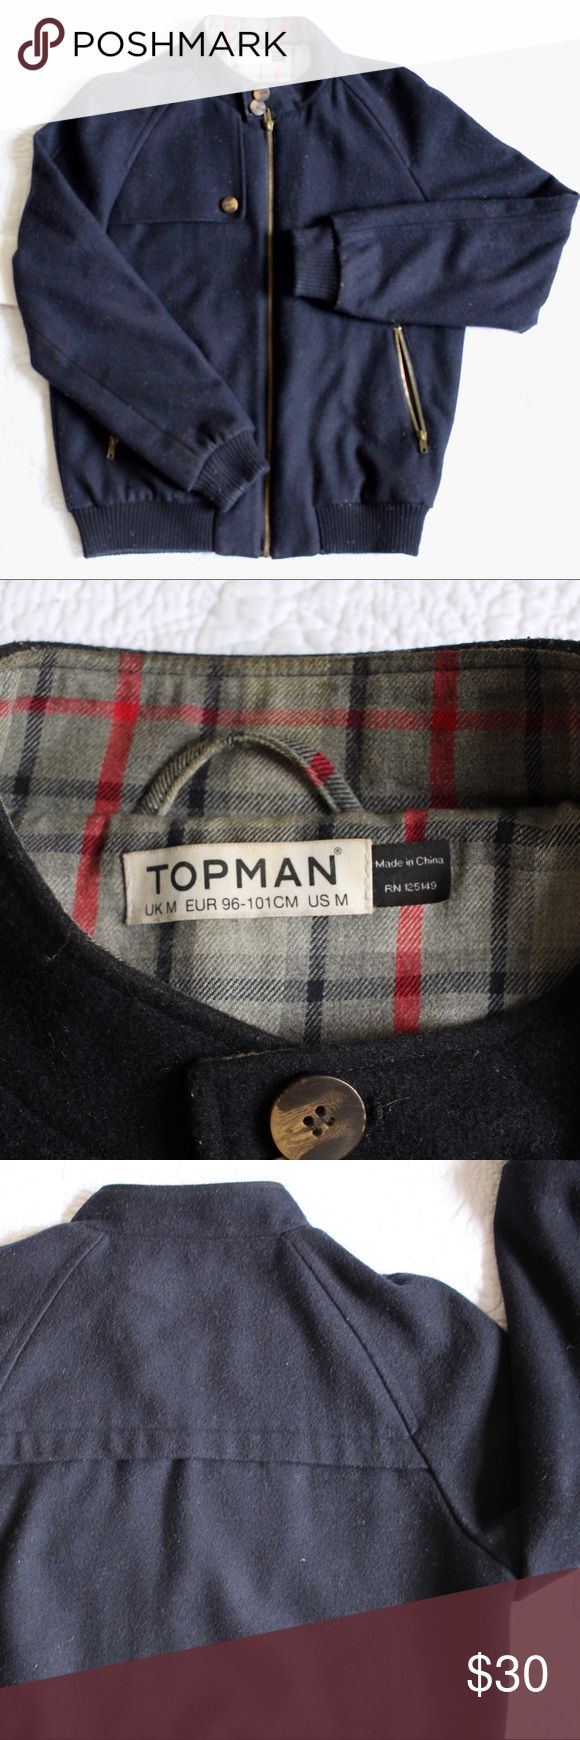 """TOPMAN navy varsity jacket Length 27"""" (flat, about 24"""" when worn); width ptp 22"""".  Good used condition.  Minor pilling and some lint on fabric but will improve with a visit to the dry cleaners.  Worn a total of 5 times.  Offers welcomed. Topman Jackets & Coats Bomber & Varsity"""